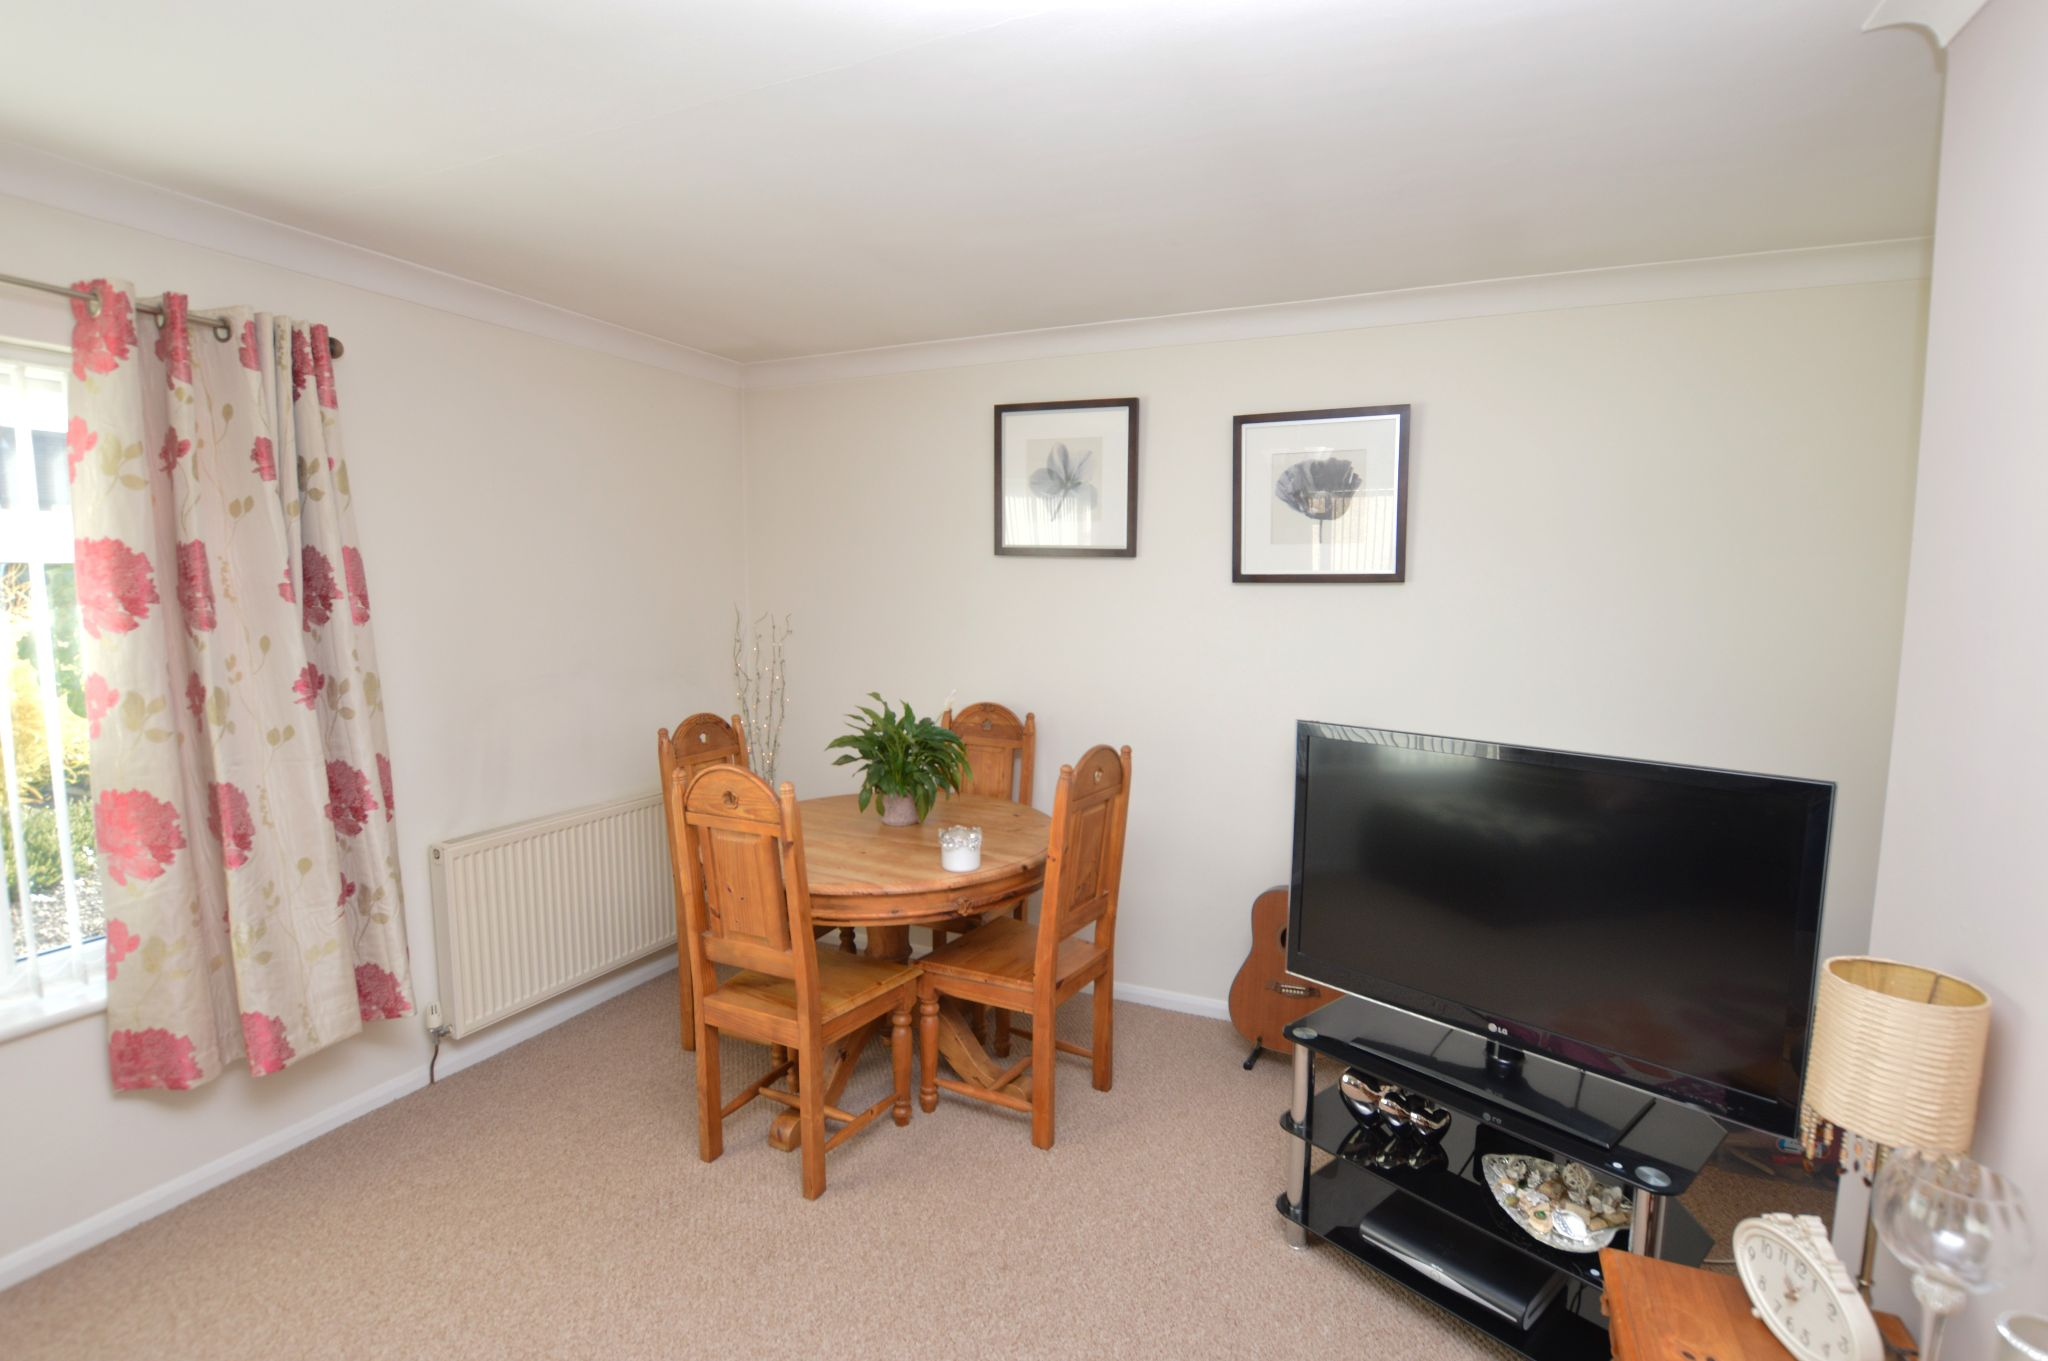 2 bedroom detached bungalow For Sale in Abergele - Lounge View 2